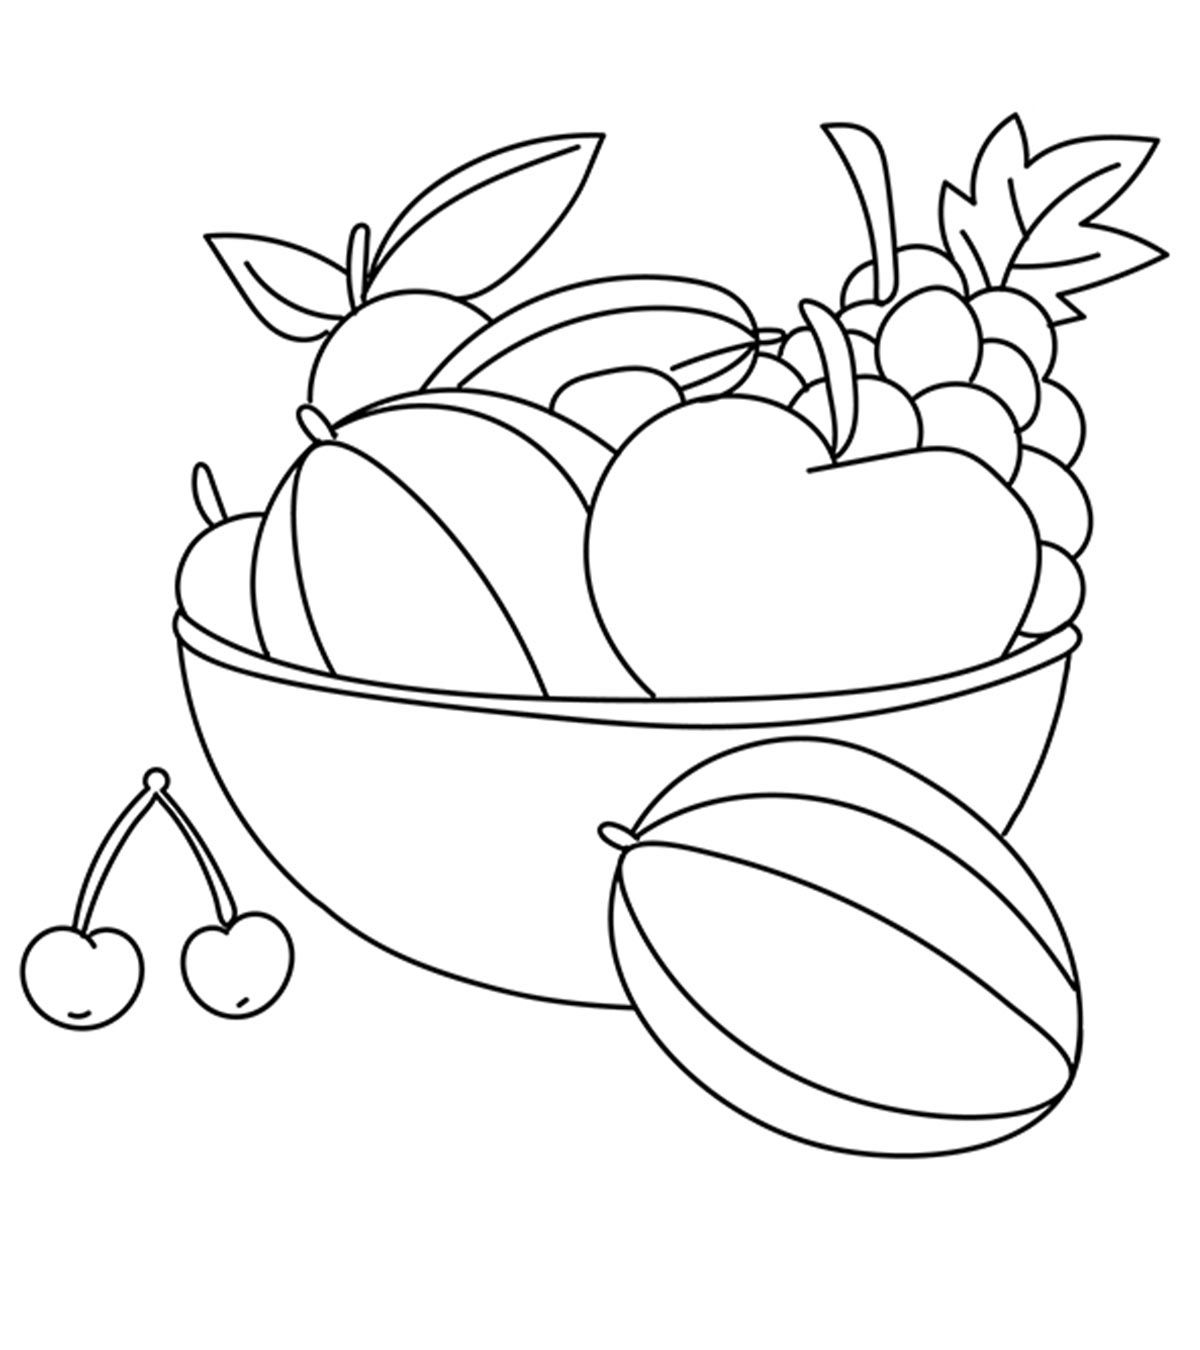 Top 10 Free Printable Cherry Coloring Pages Online Coloring Pages For Kids Coloring Pages Fruit Coloring Pages